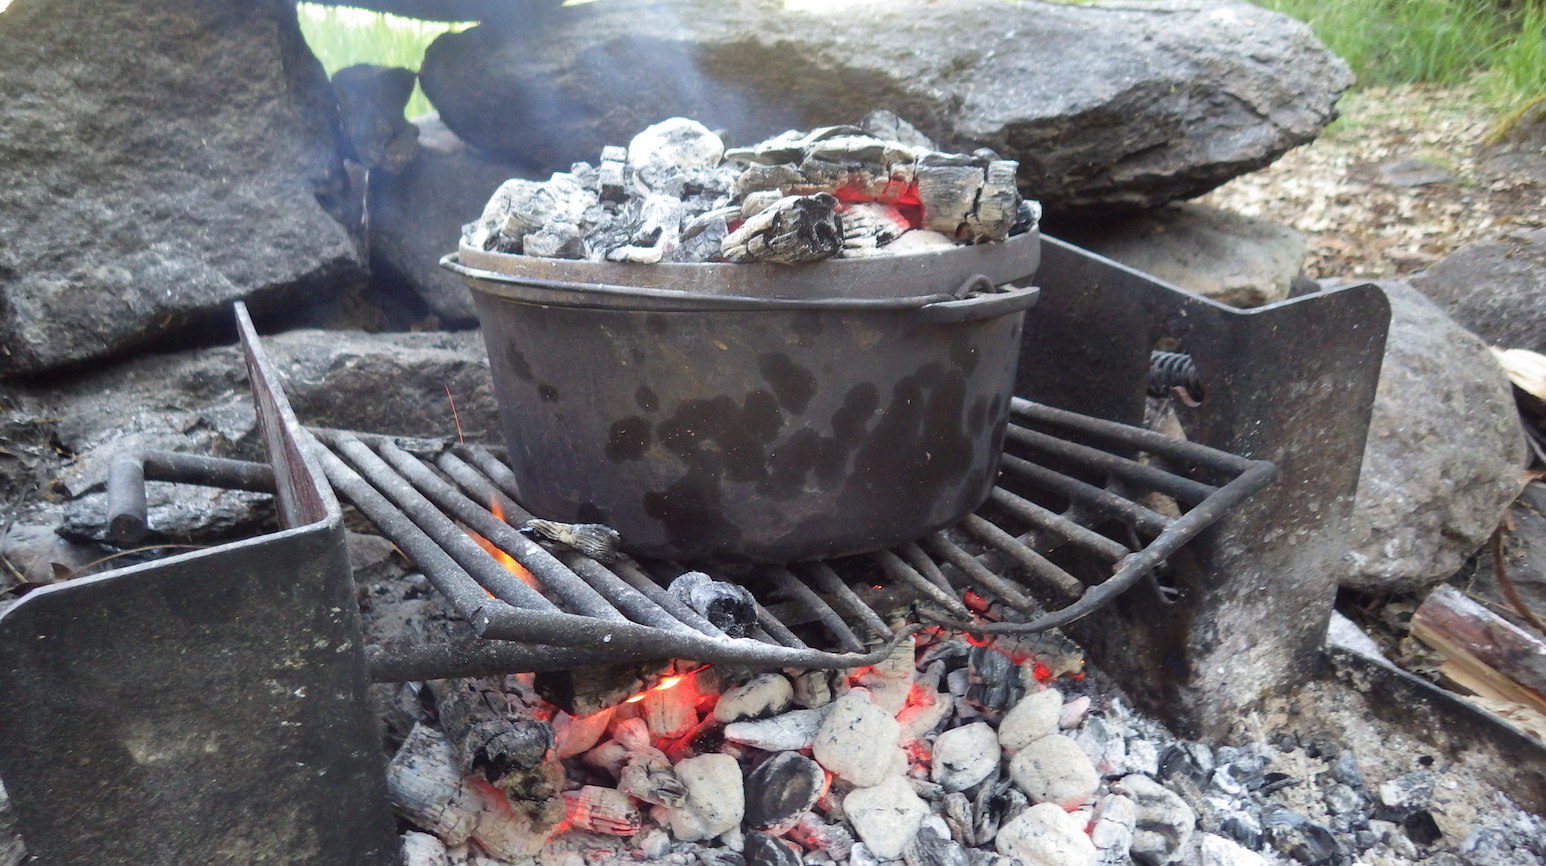 Dutch Oven Biscuits baking over an open flame.